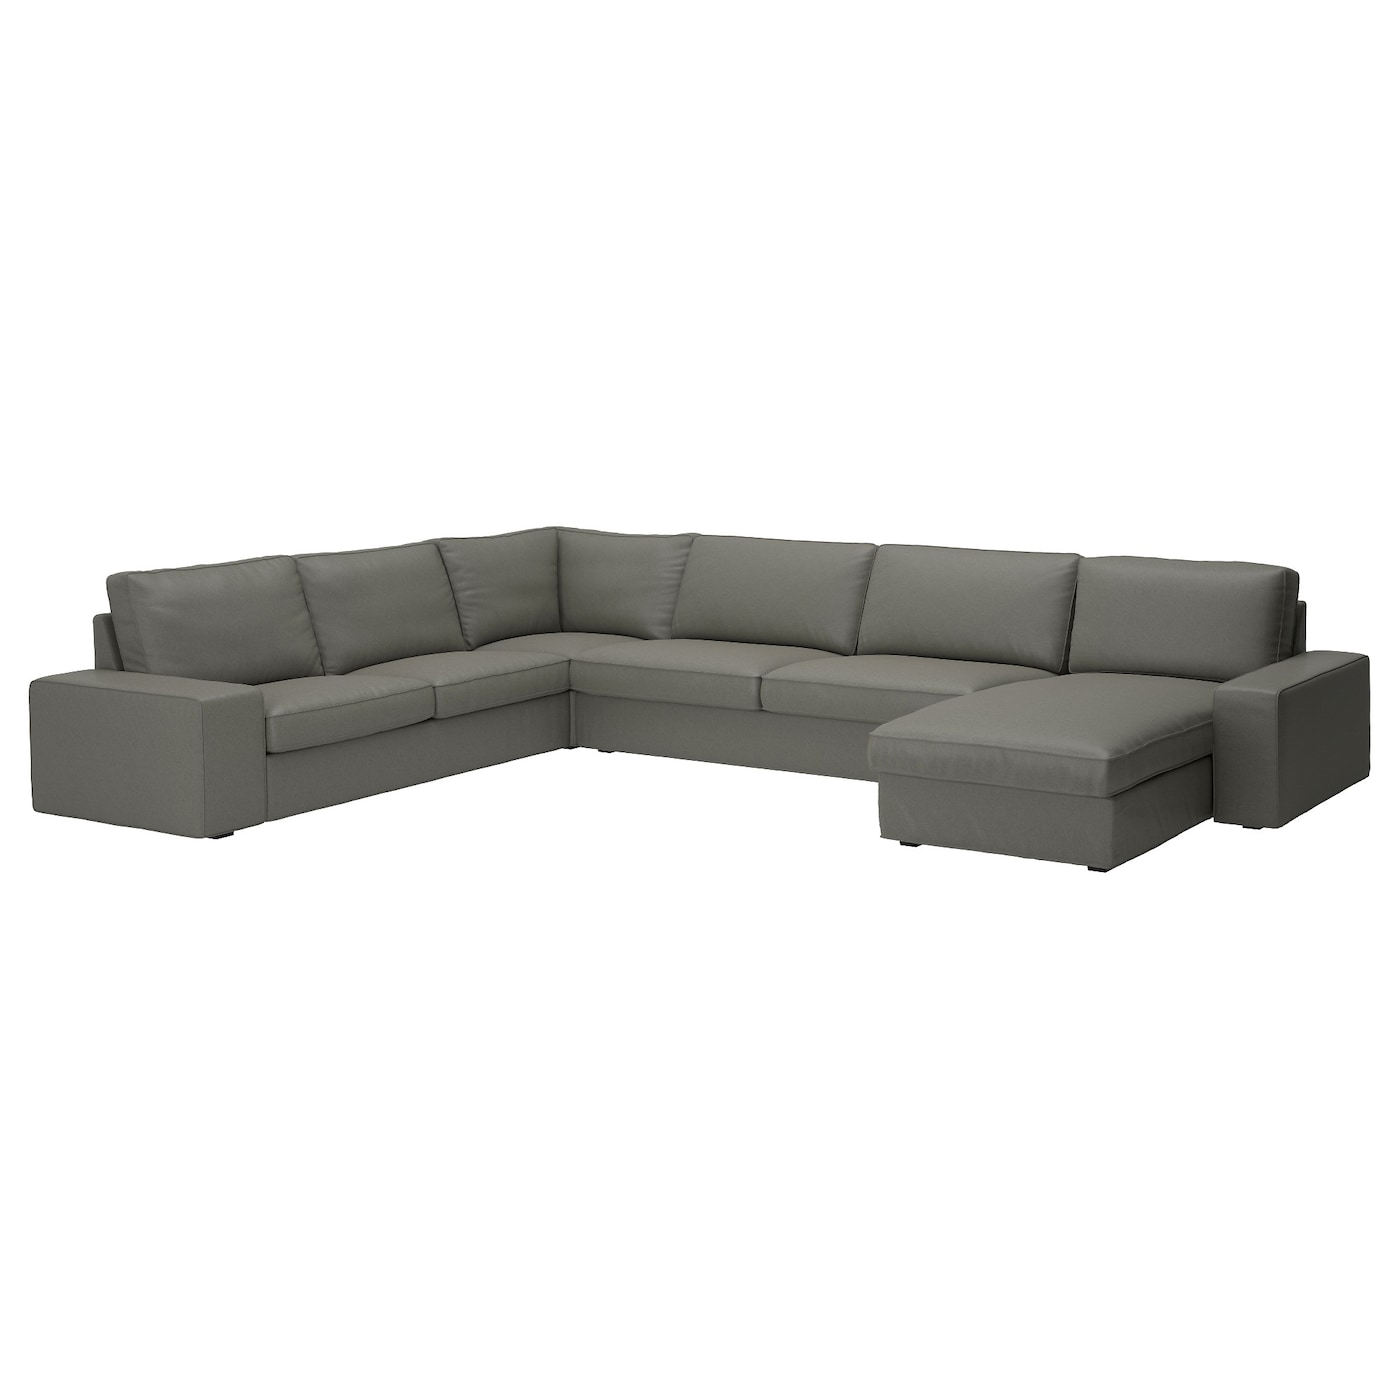 Kivik corner sofa 23 32 and chaise longue borred grey - Chaise longue jardin ikea ...